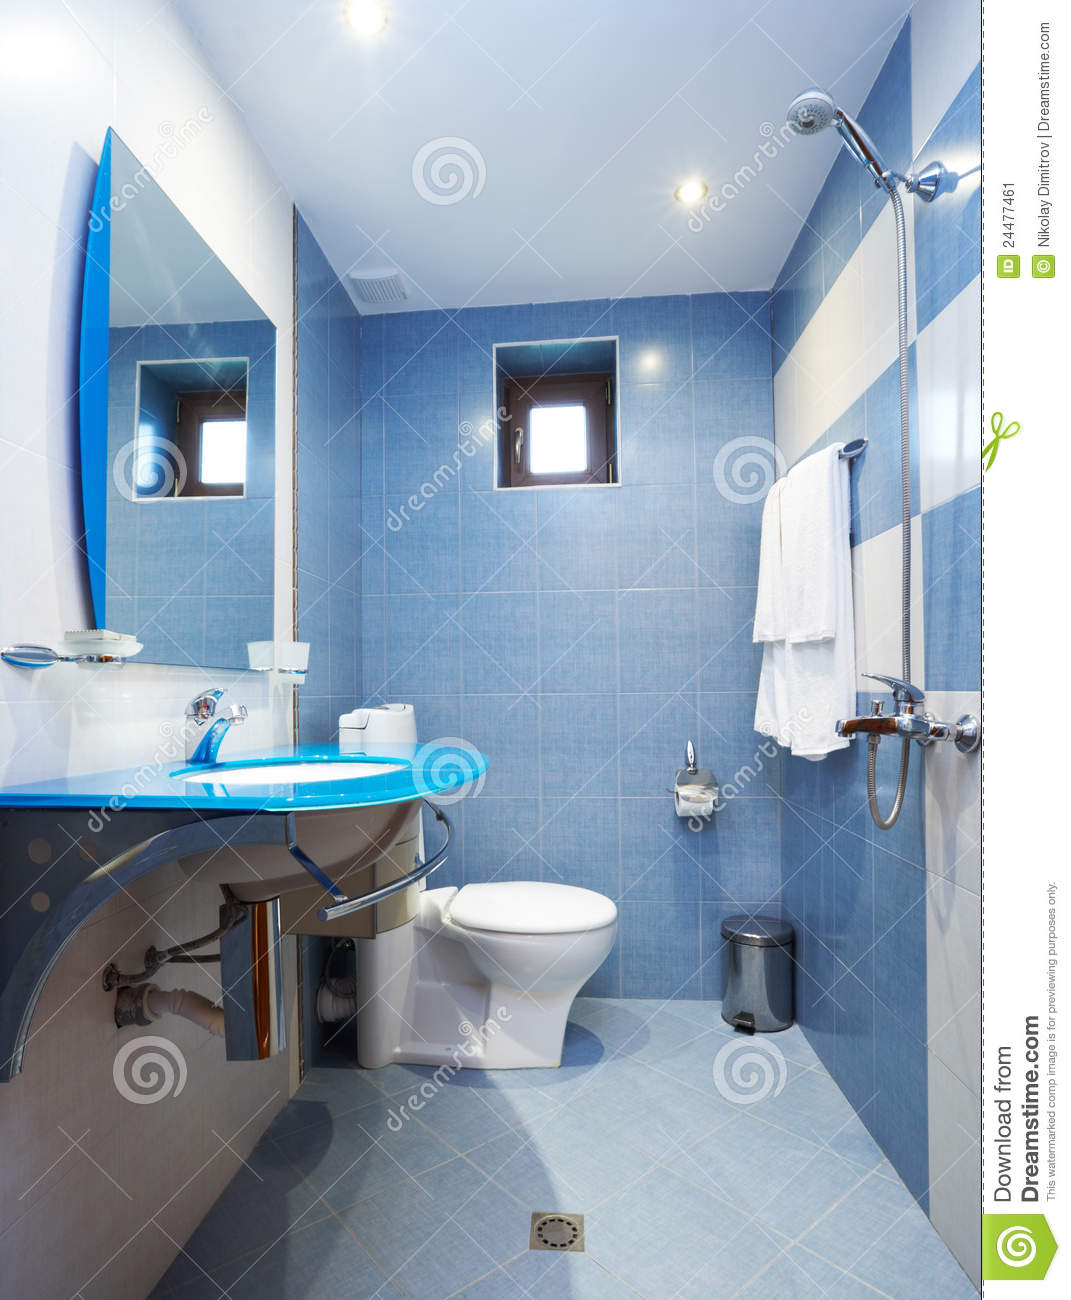 Charmant Modern Blue Bathroom